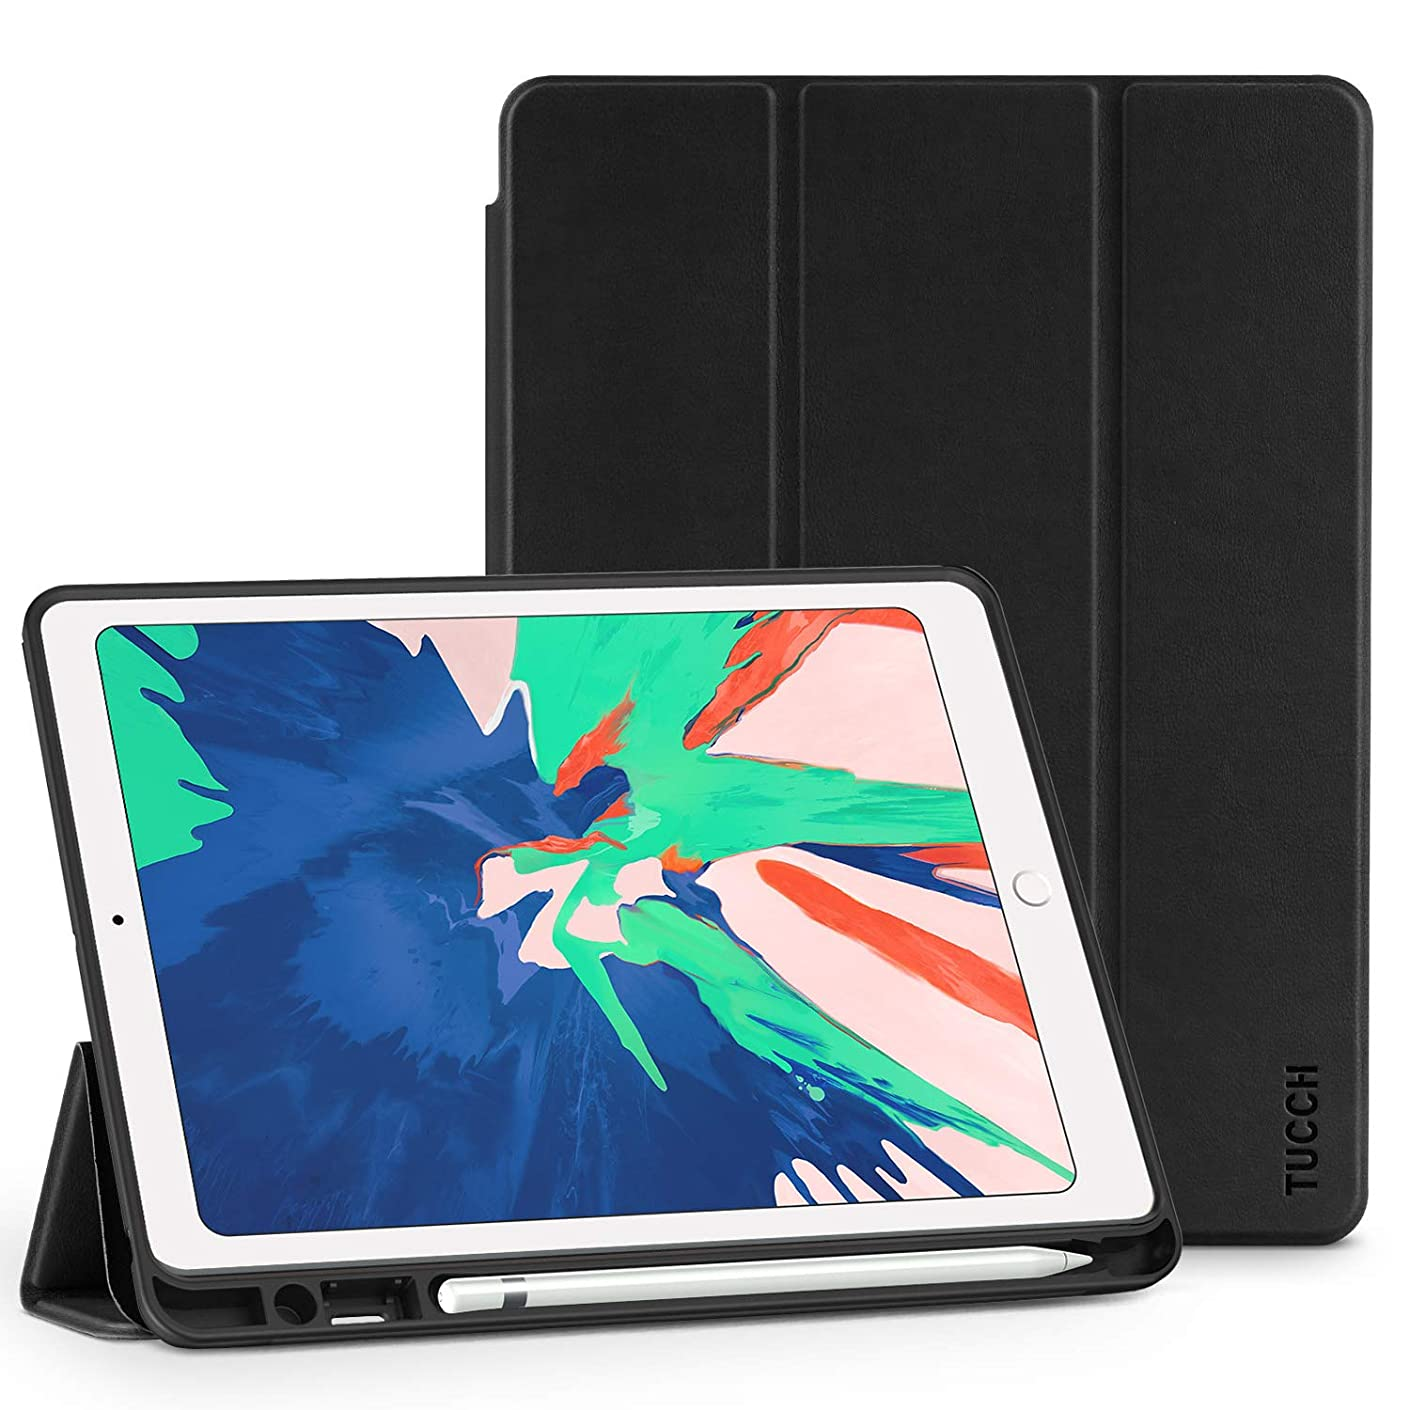 TUCCH iPad Air 3 Smart Case (10.5-inch 2019), [Auto Sleep/Wake] Trifold [Stand] PU Leather Cover with Pencil Holder, Soft TPU Back Cover Compatible with iPad Air (3rd Gen) 10.5 inch, Black